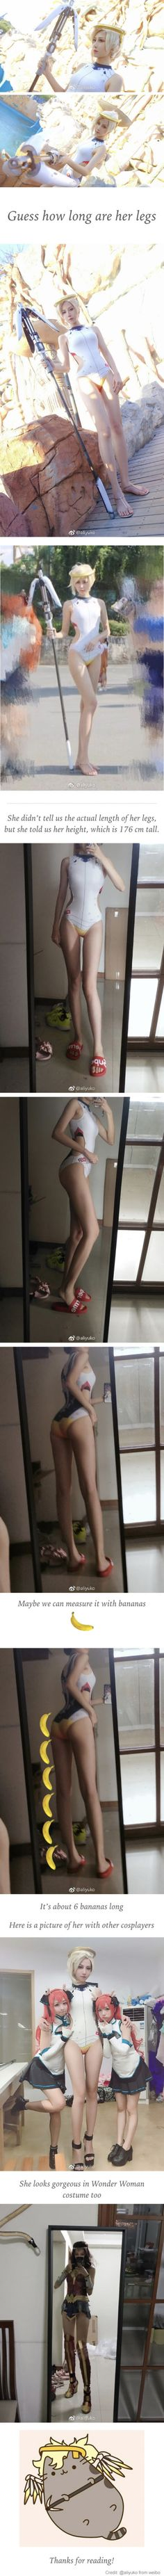 This Chinese Girl May Have The Perfect Body Proportion For Cosplaying Every Character